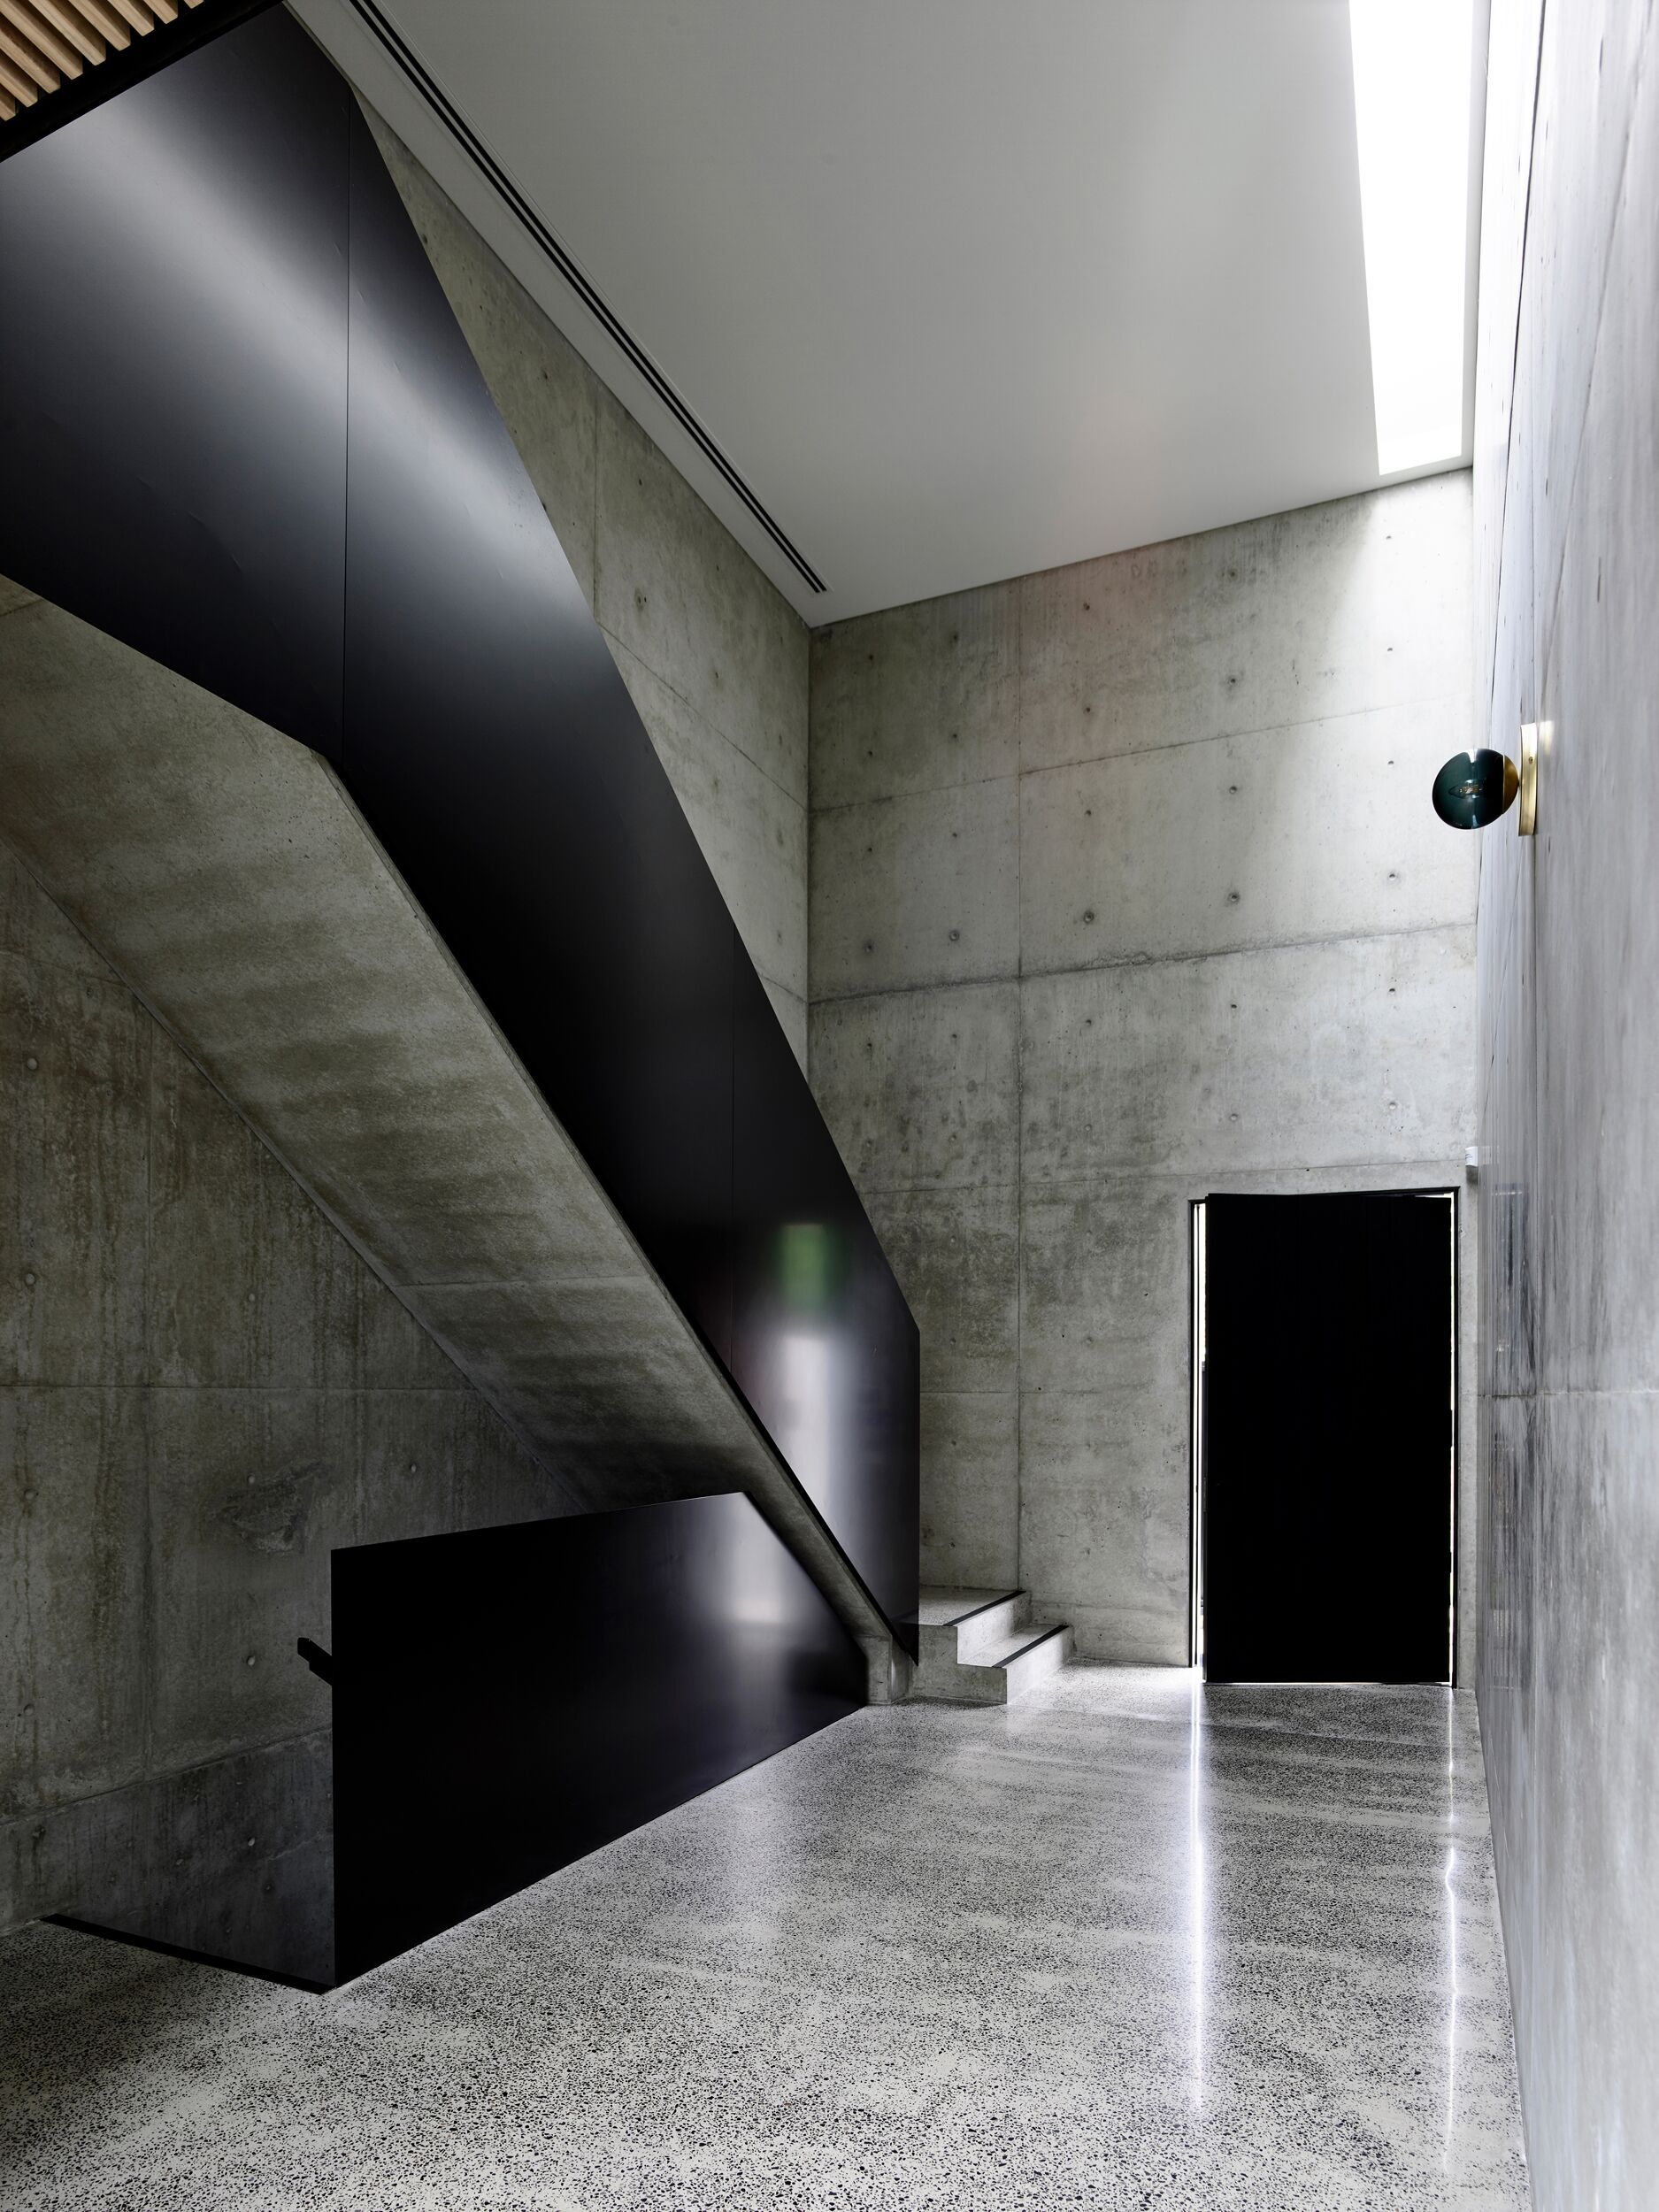 Light Vault House By Chamberlain Architects The Brighton Concrete Bunker The Local Project In 2020 Architect House Interior Architecture